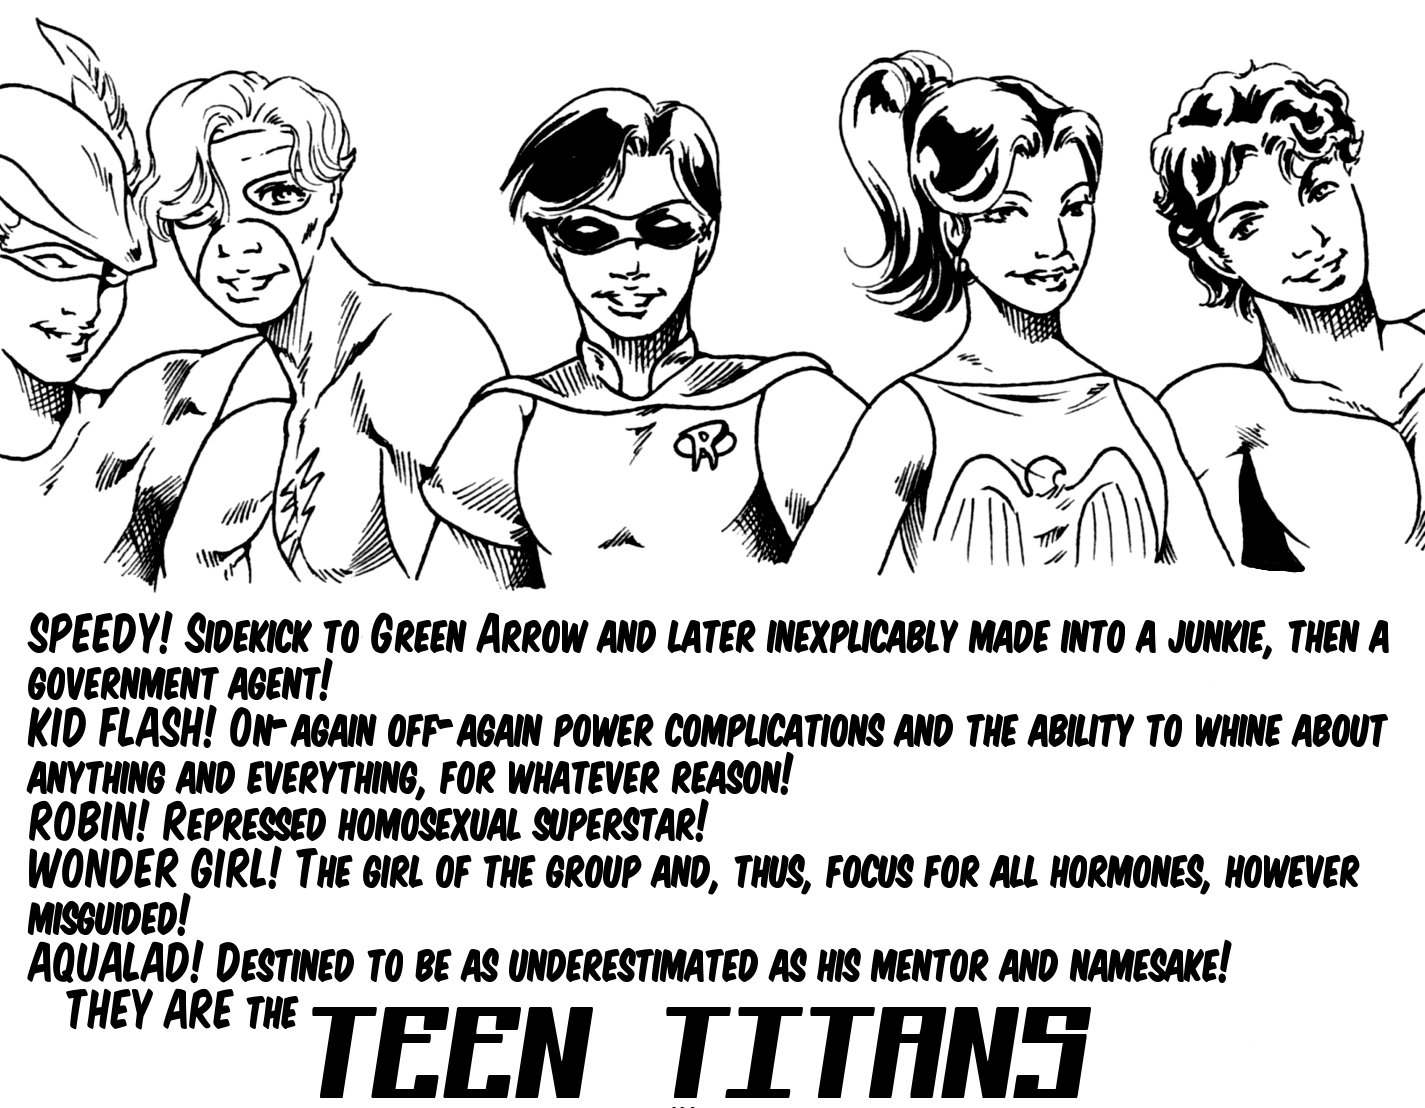 Not Quite the Teen Titans